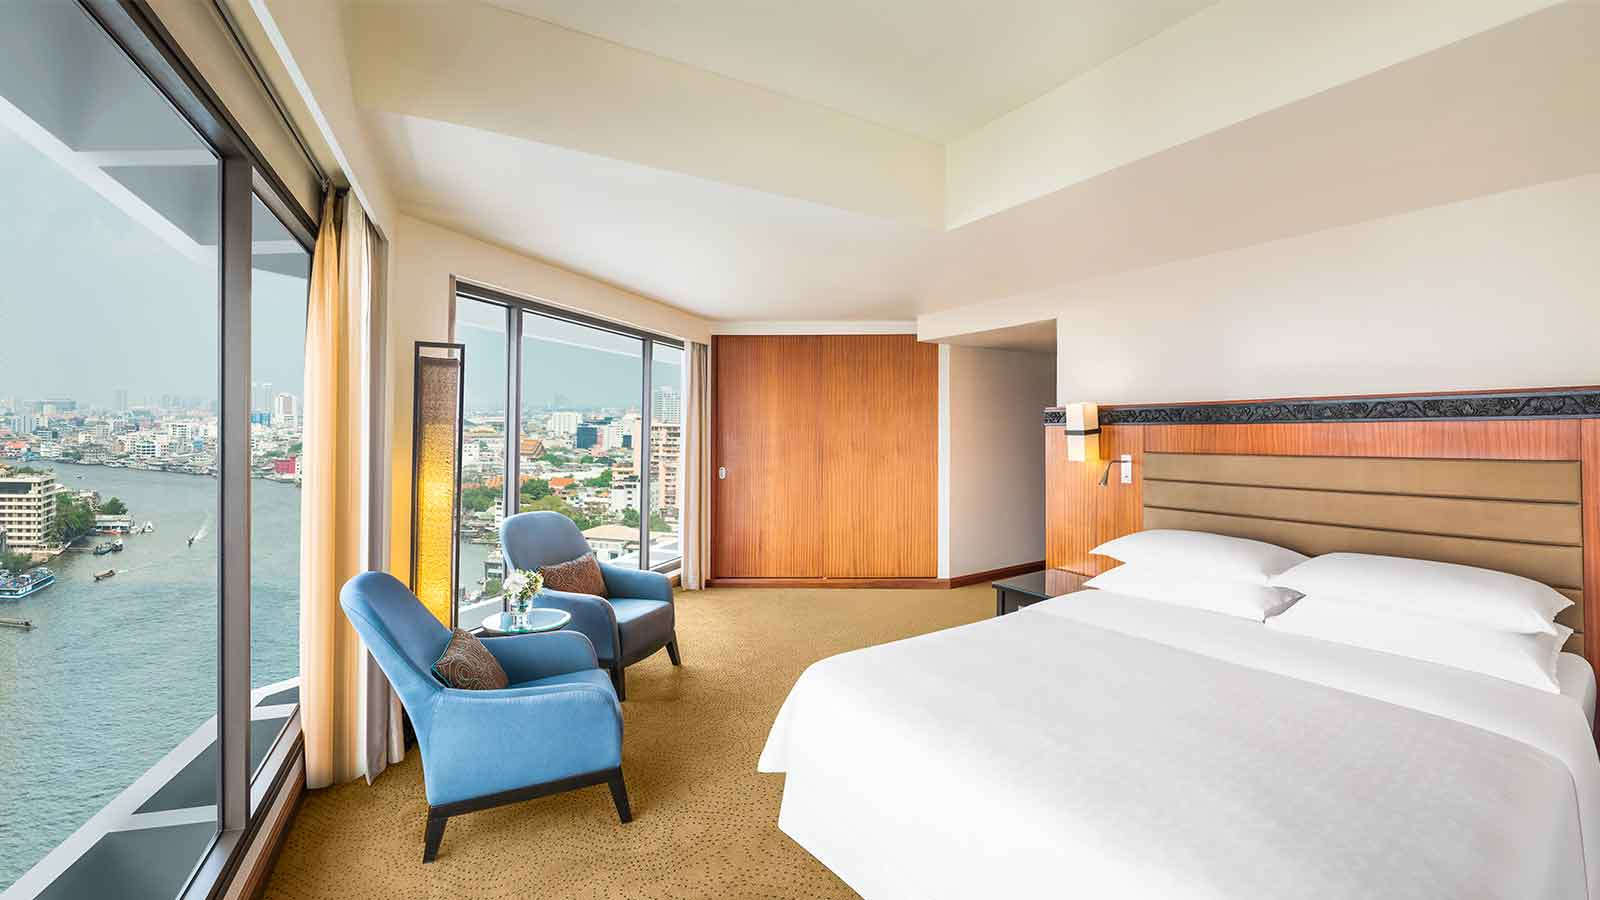 Executive Riverview Room - Royal Orchid Sheraton Hotel Bangkok